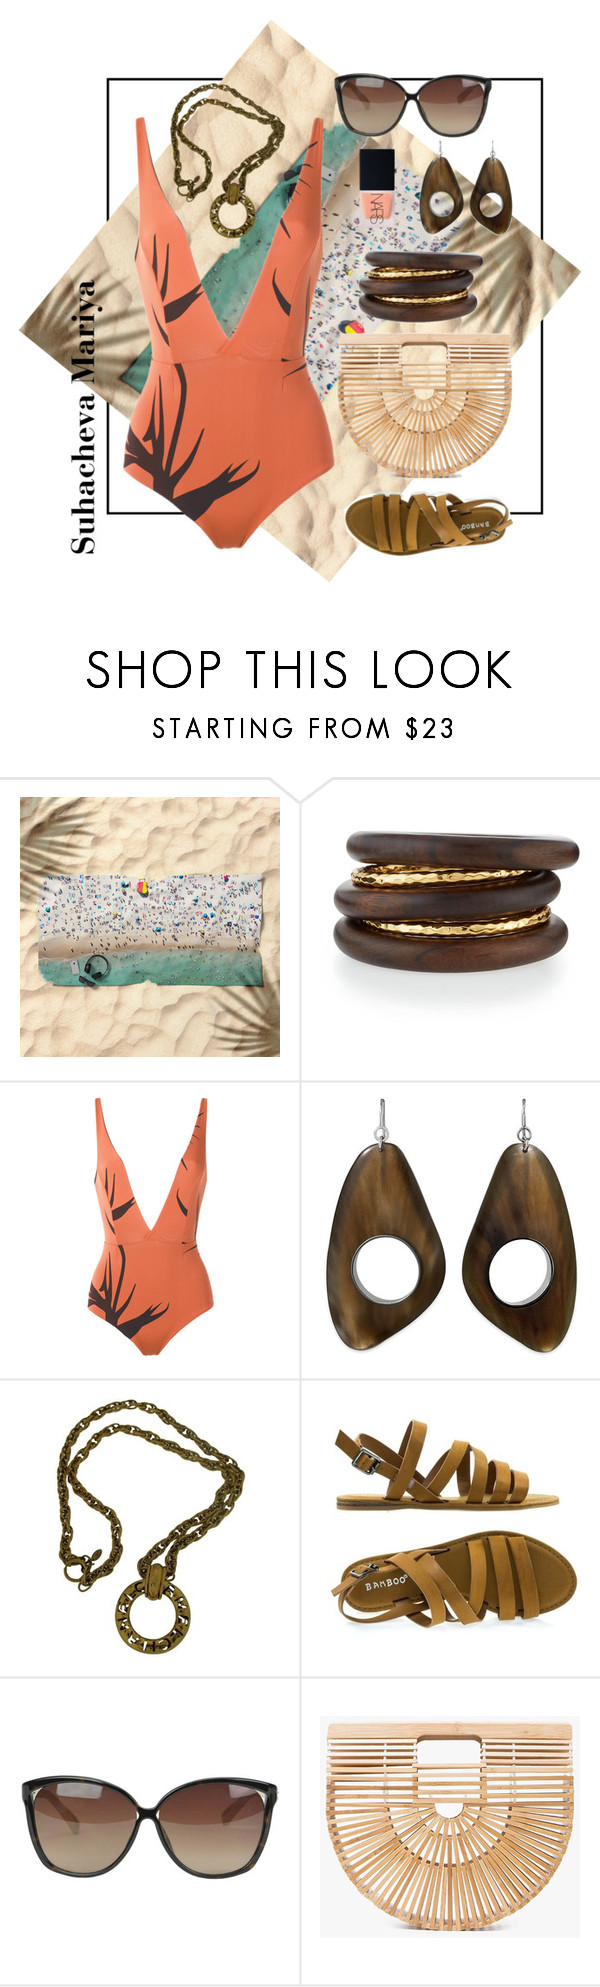 """Untitled #130"" by maria-sukhacheva ❤ liked on Polyvore featuring NEST Jewelry, Haight, Chanel, Linda Farrow, Cult Gaia and NARS Cosmetics"